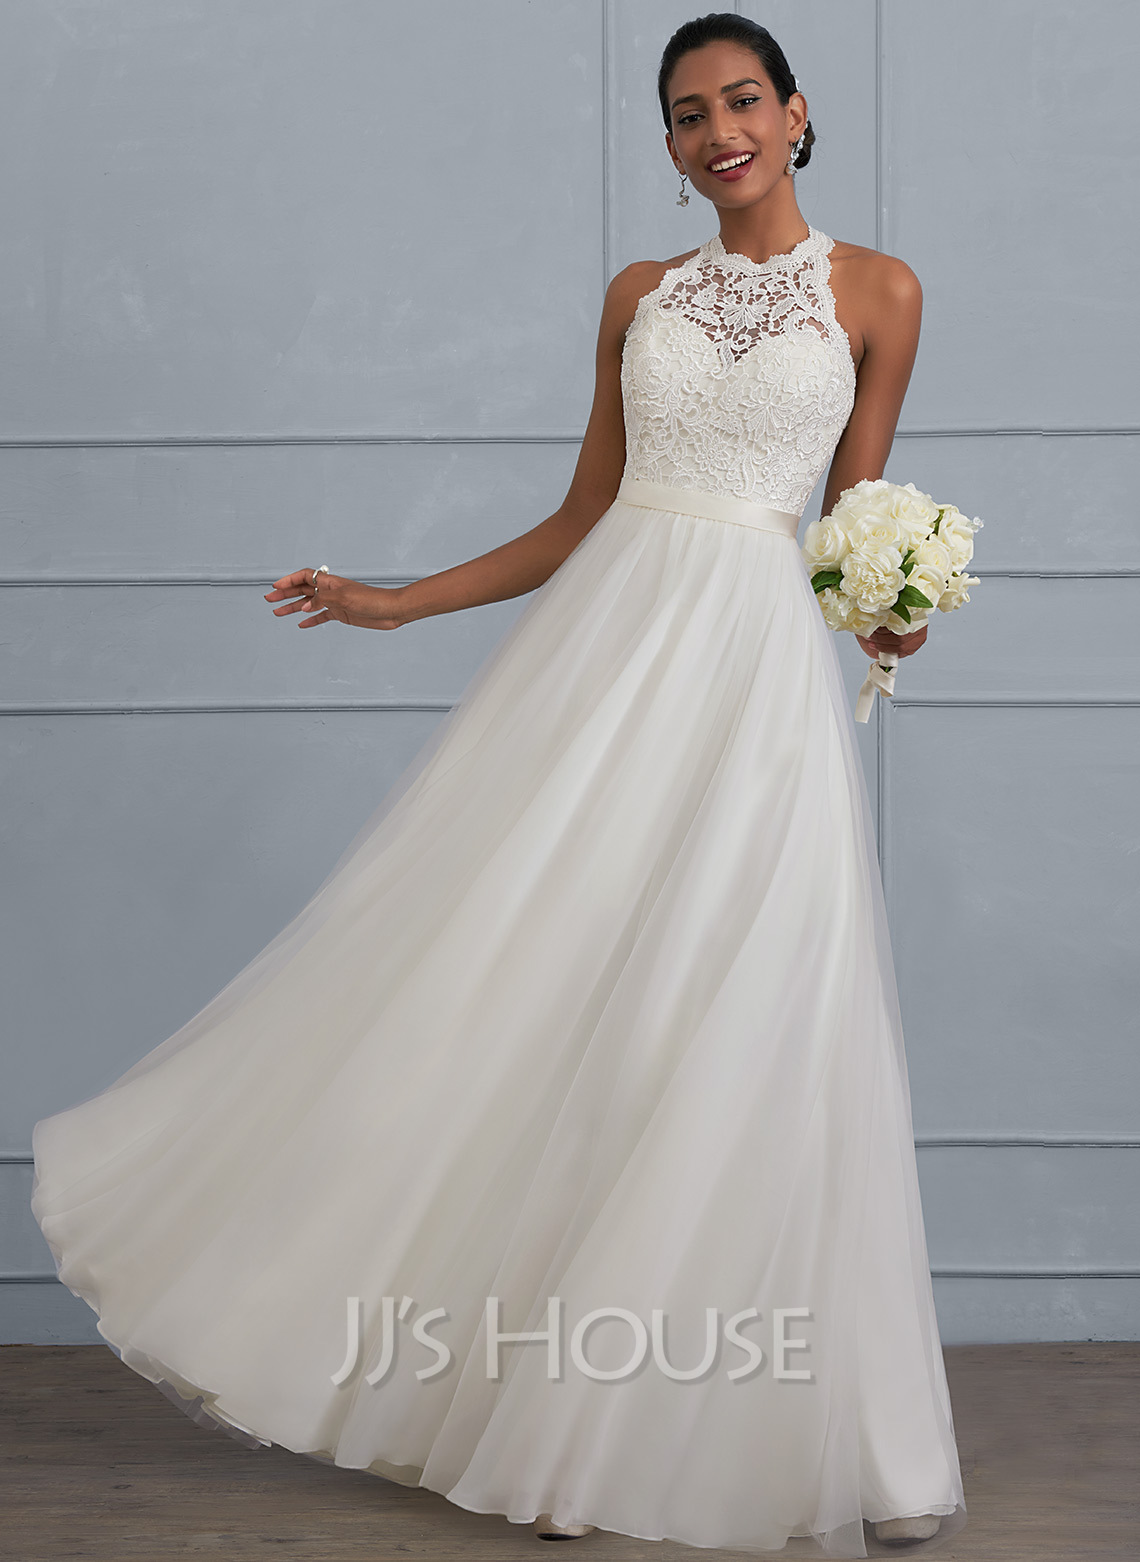 Wedding Dresses For Over 50 Brides | JJ\'sHouse